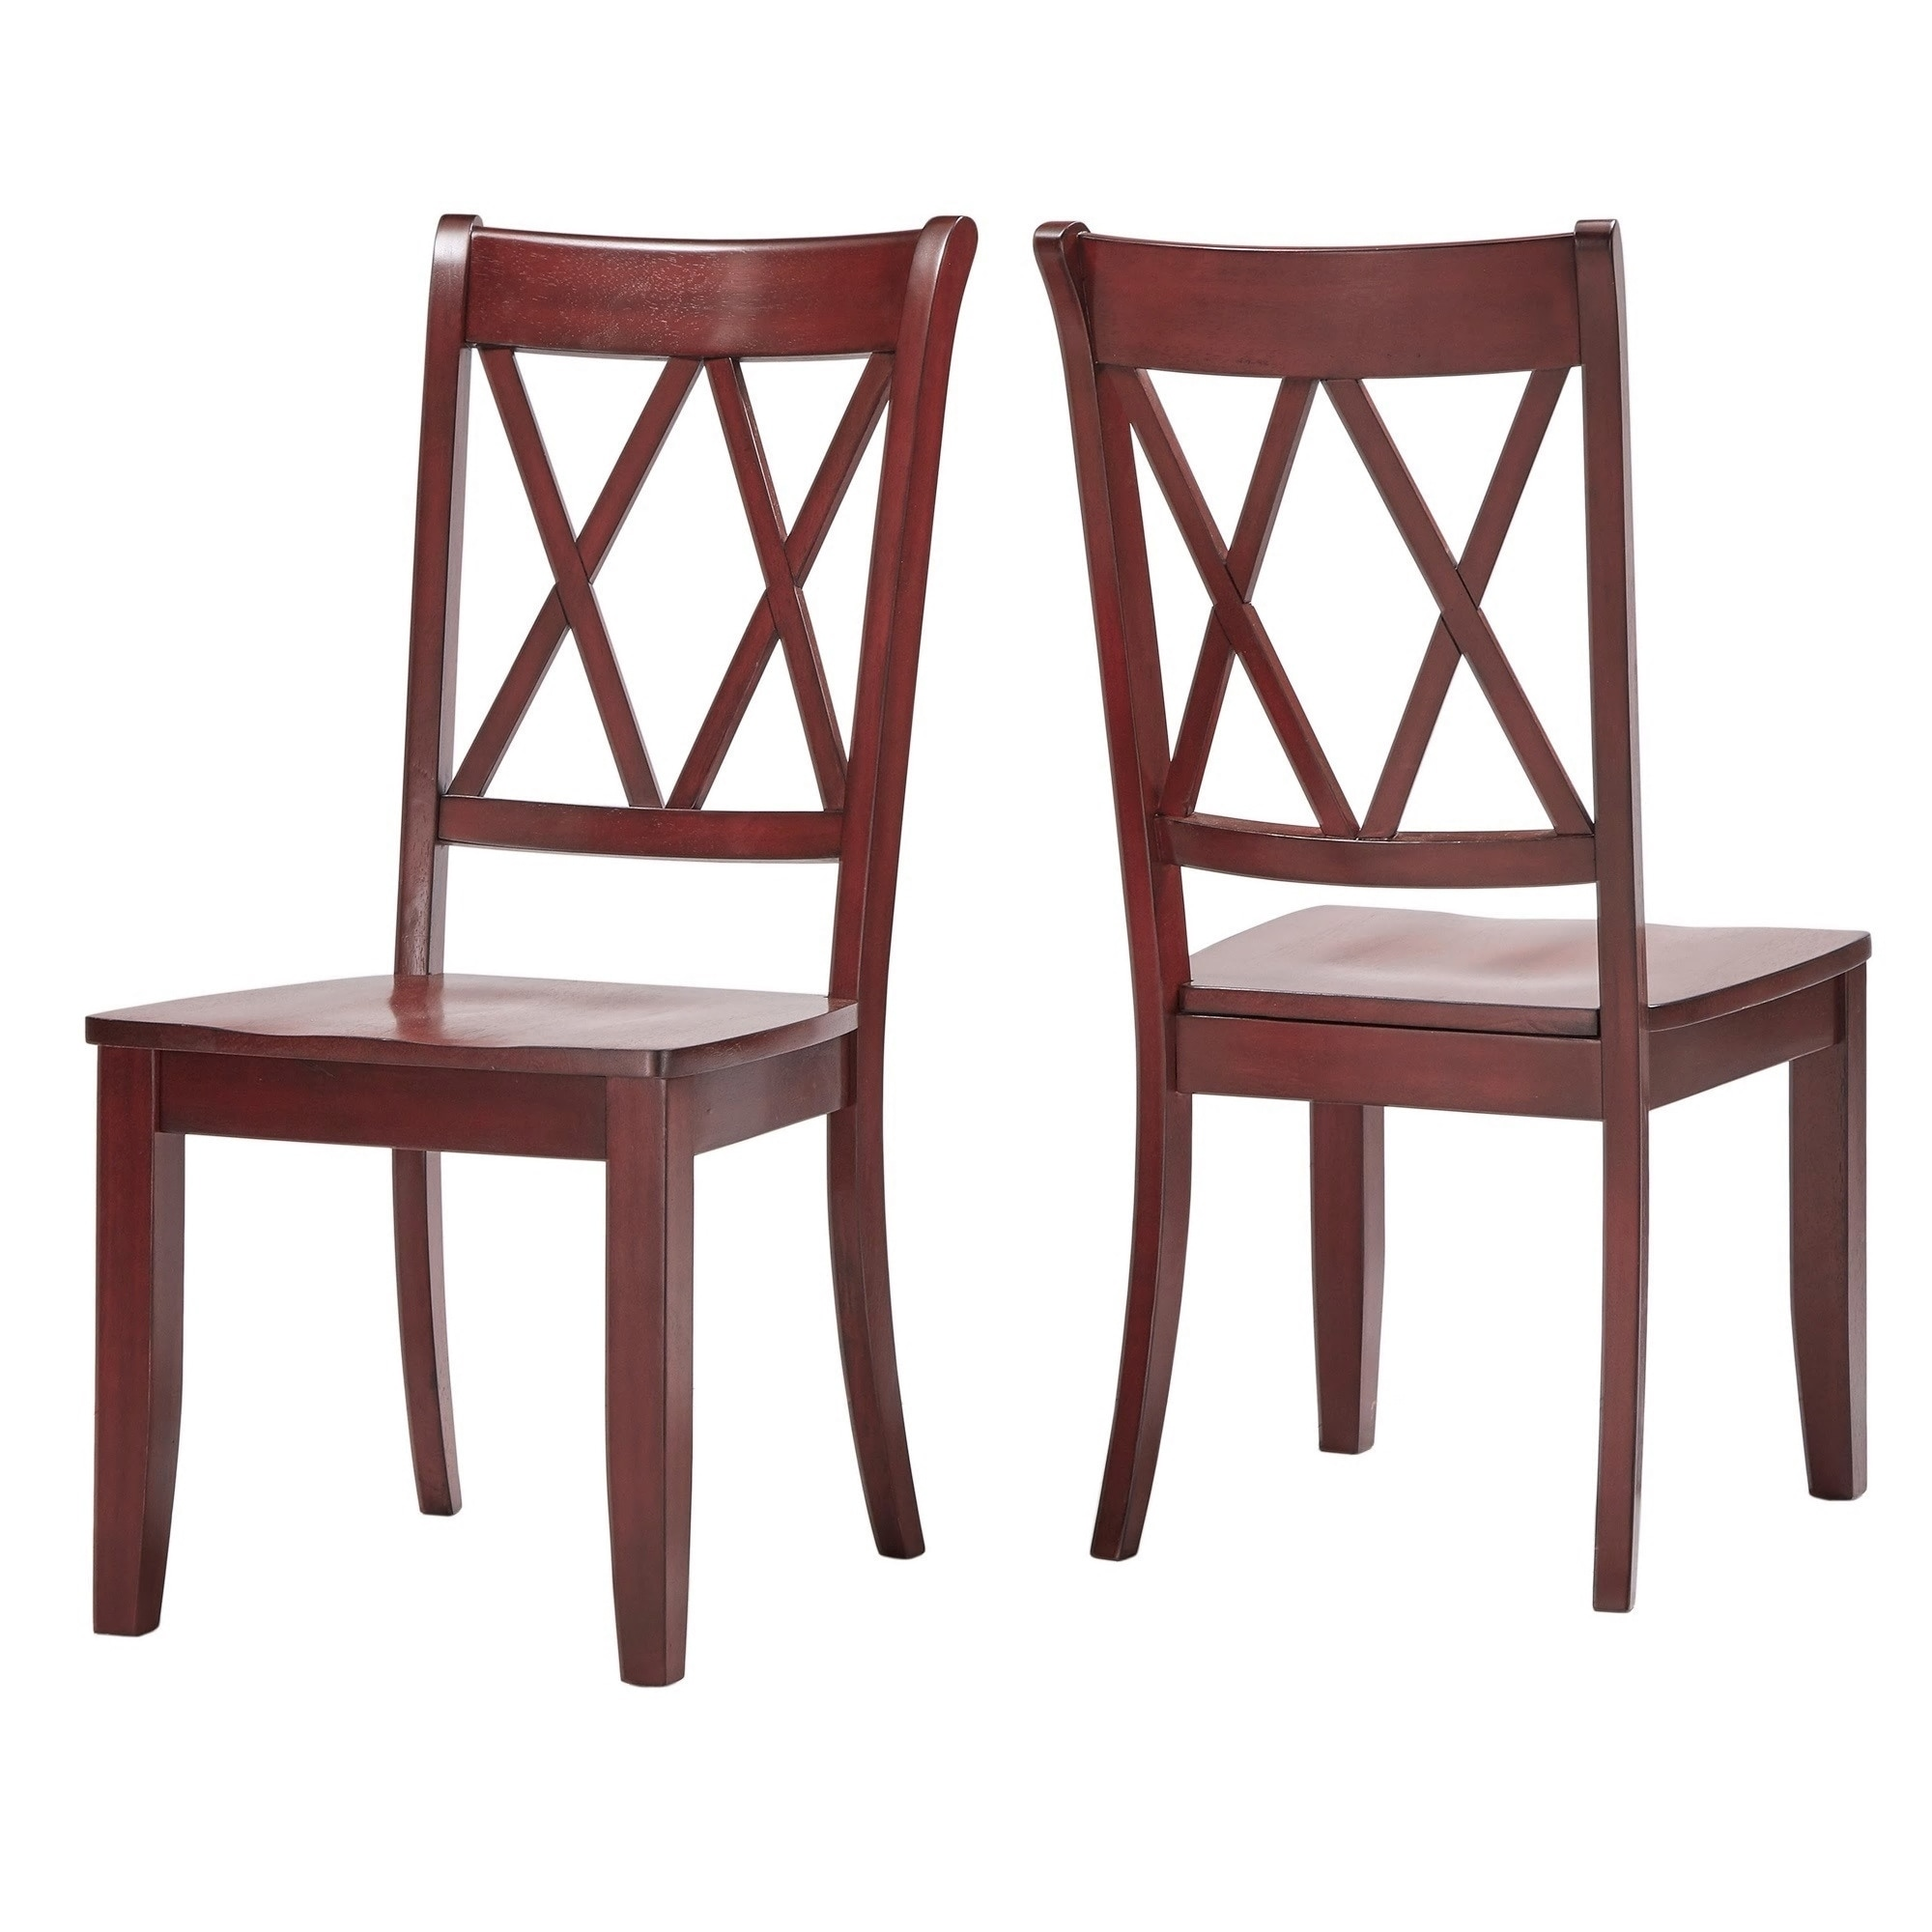 Eleanor X Back Wood Dining Chair (Set of 6) by iNSPIRE Q Classic